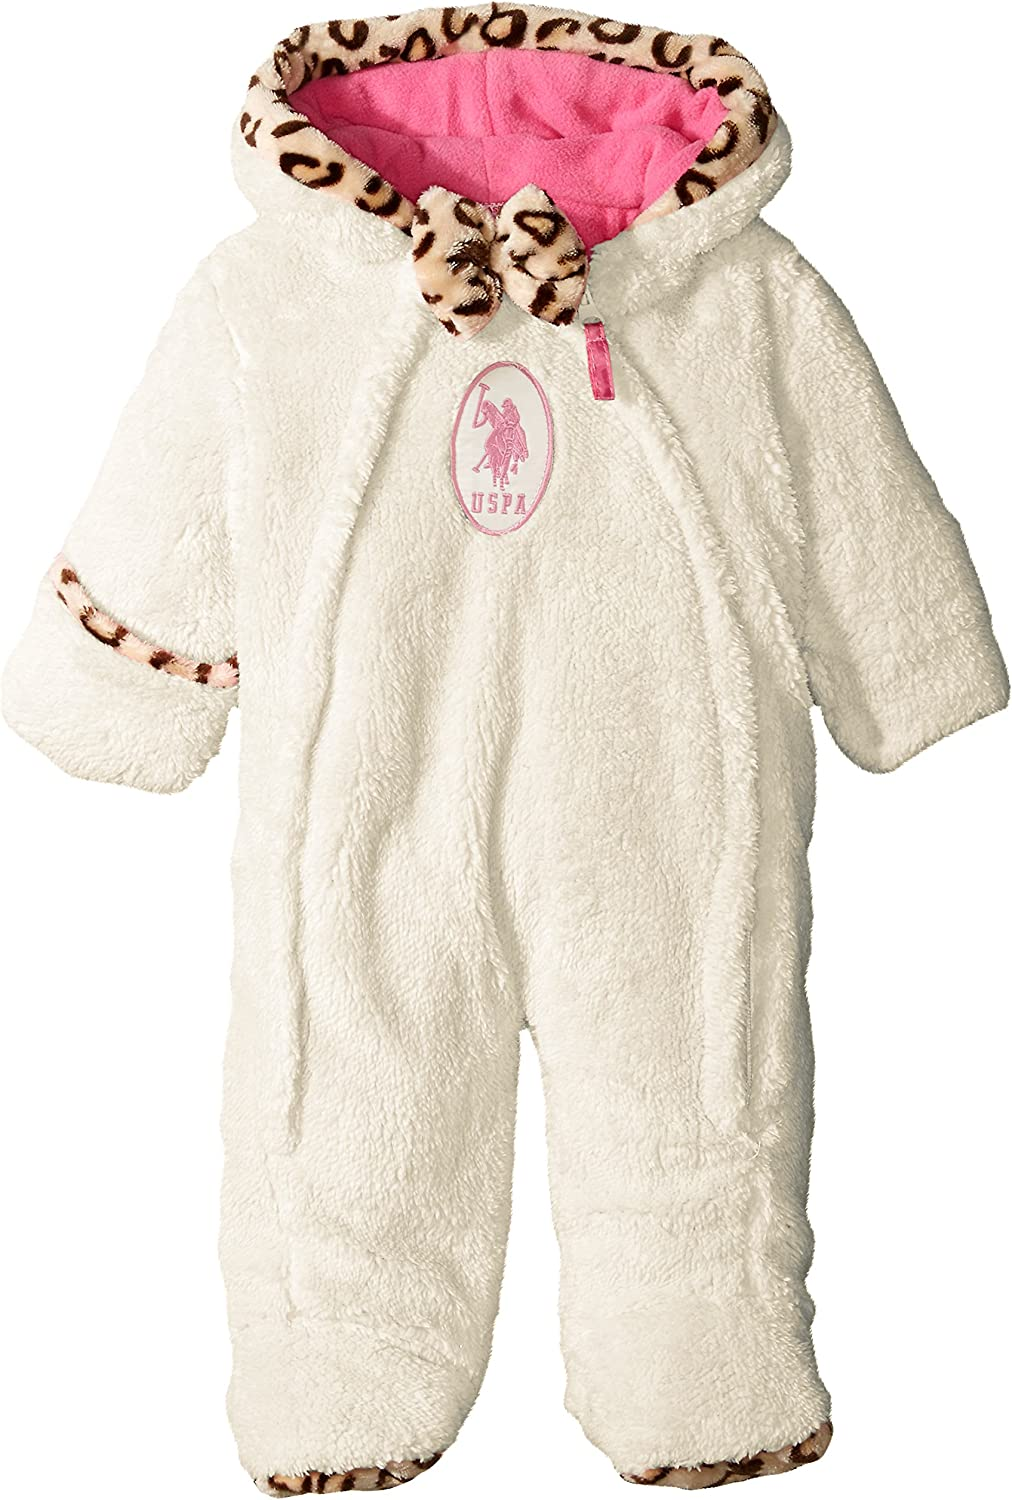 Sales U.S. Polo 25% OFF Assn. baby-girls Pram Styles More Available